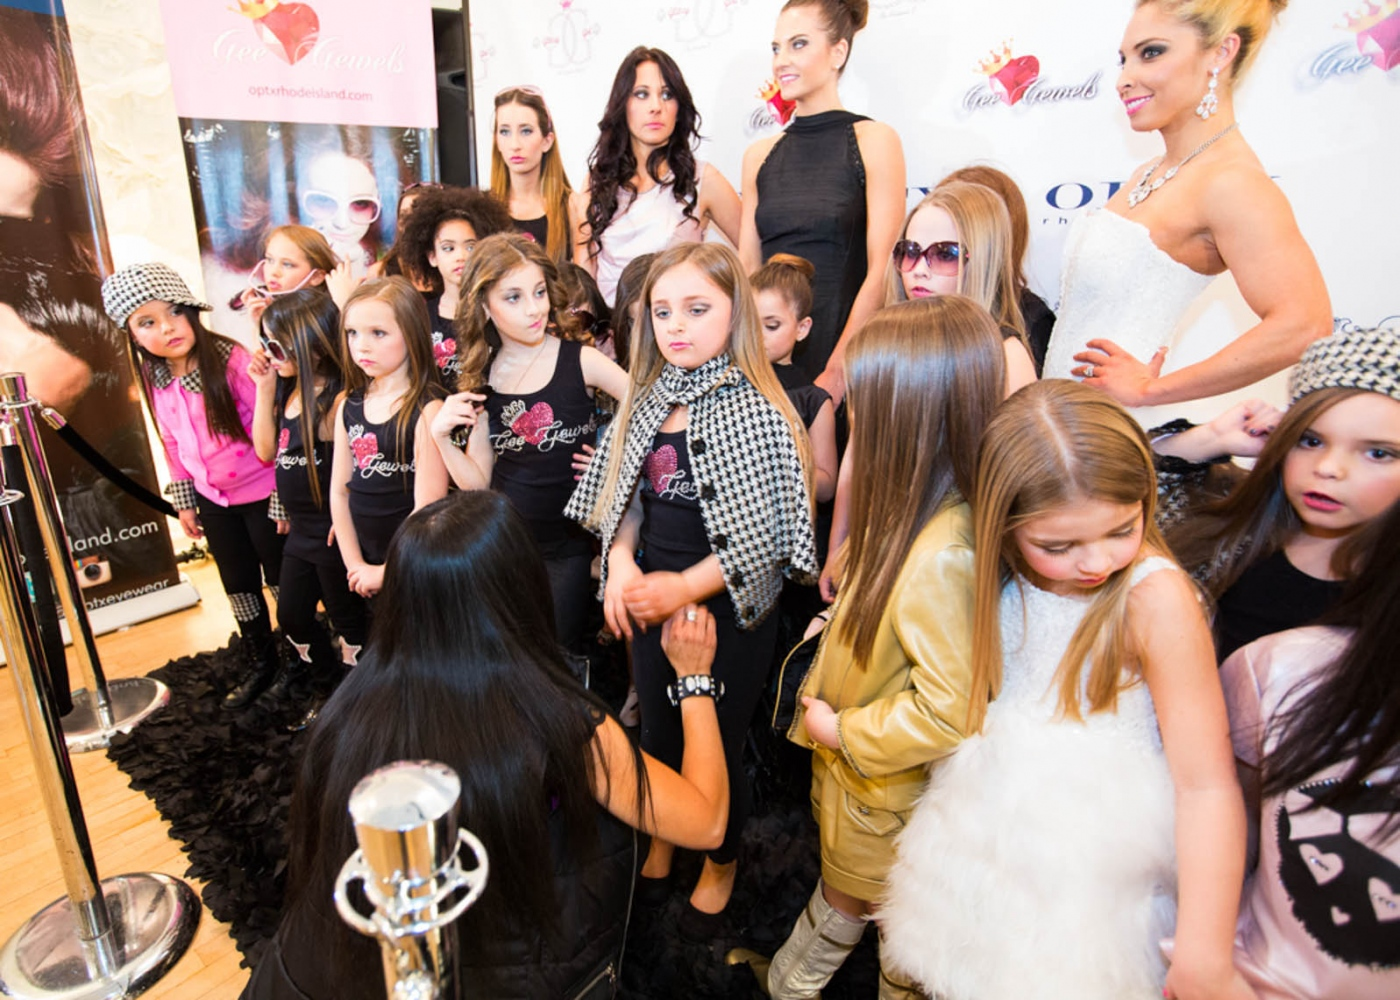 Isabella and models pose for a photo op after her clothing line debuts at New York Fashion Week For Nido Magazine